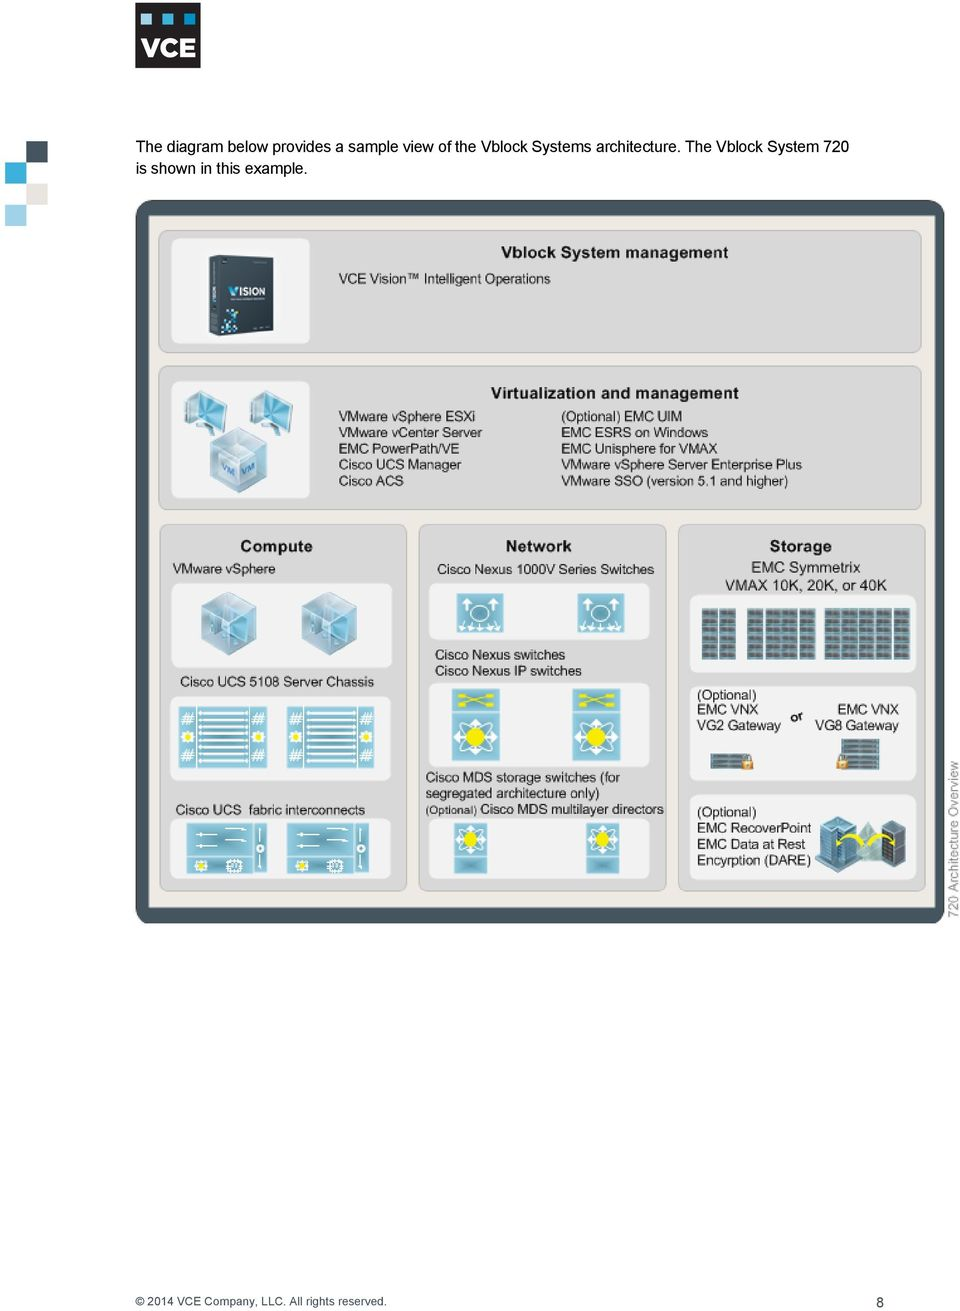 VCE VBLOCK SYSTEMS DEPLOYMENT AND IMPLEMENTATION: STORAGE